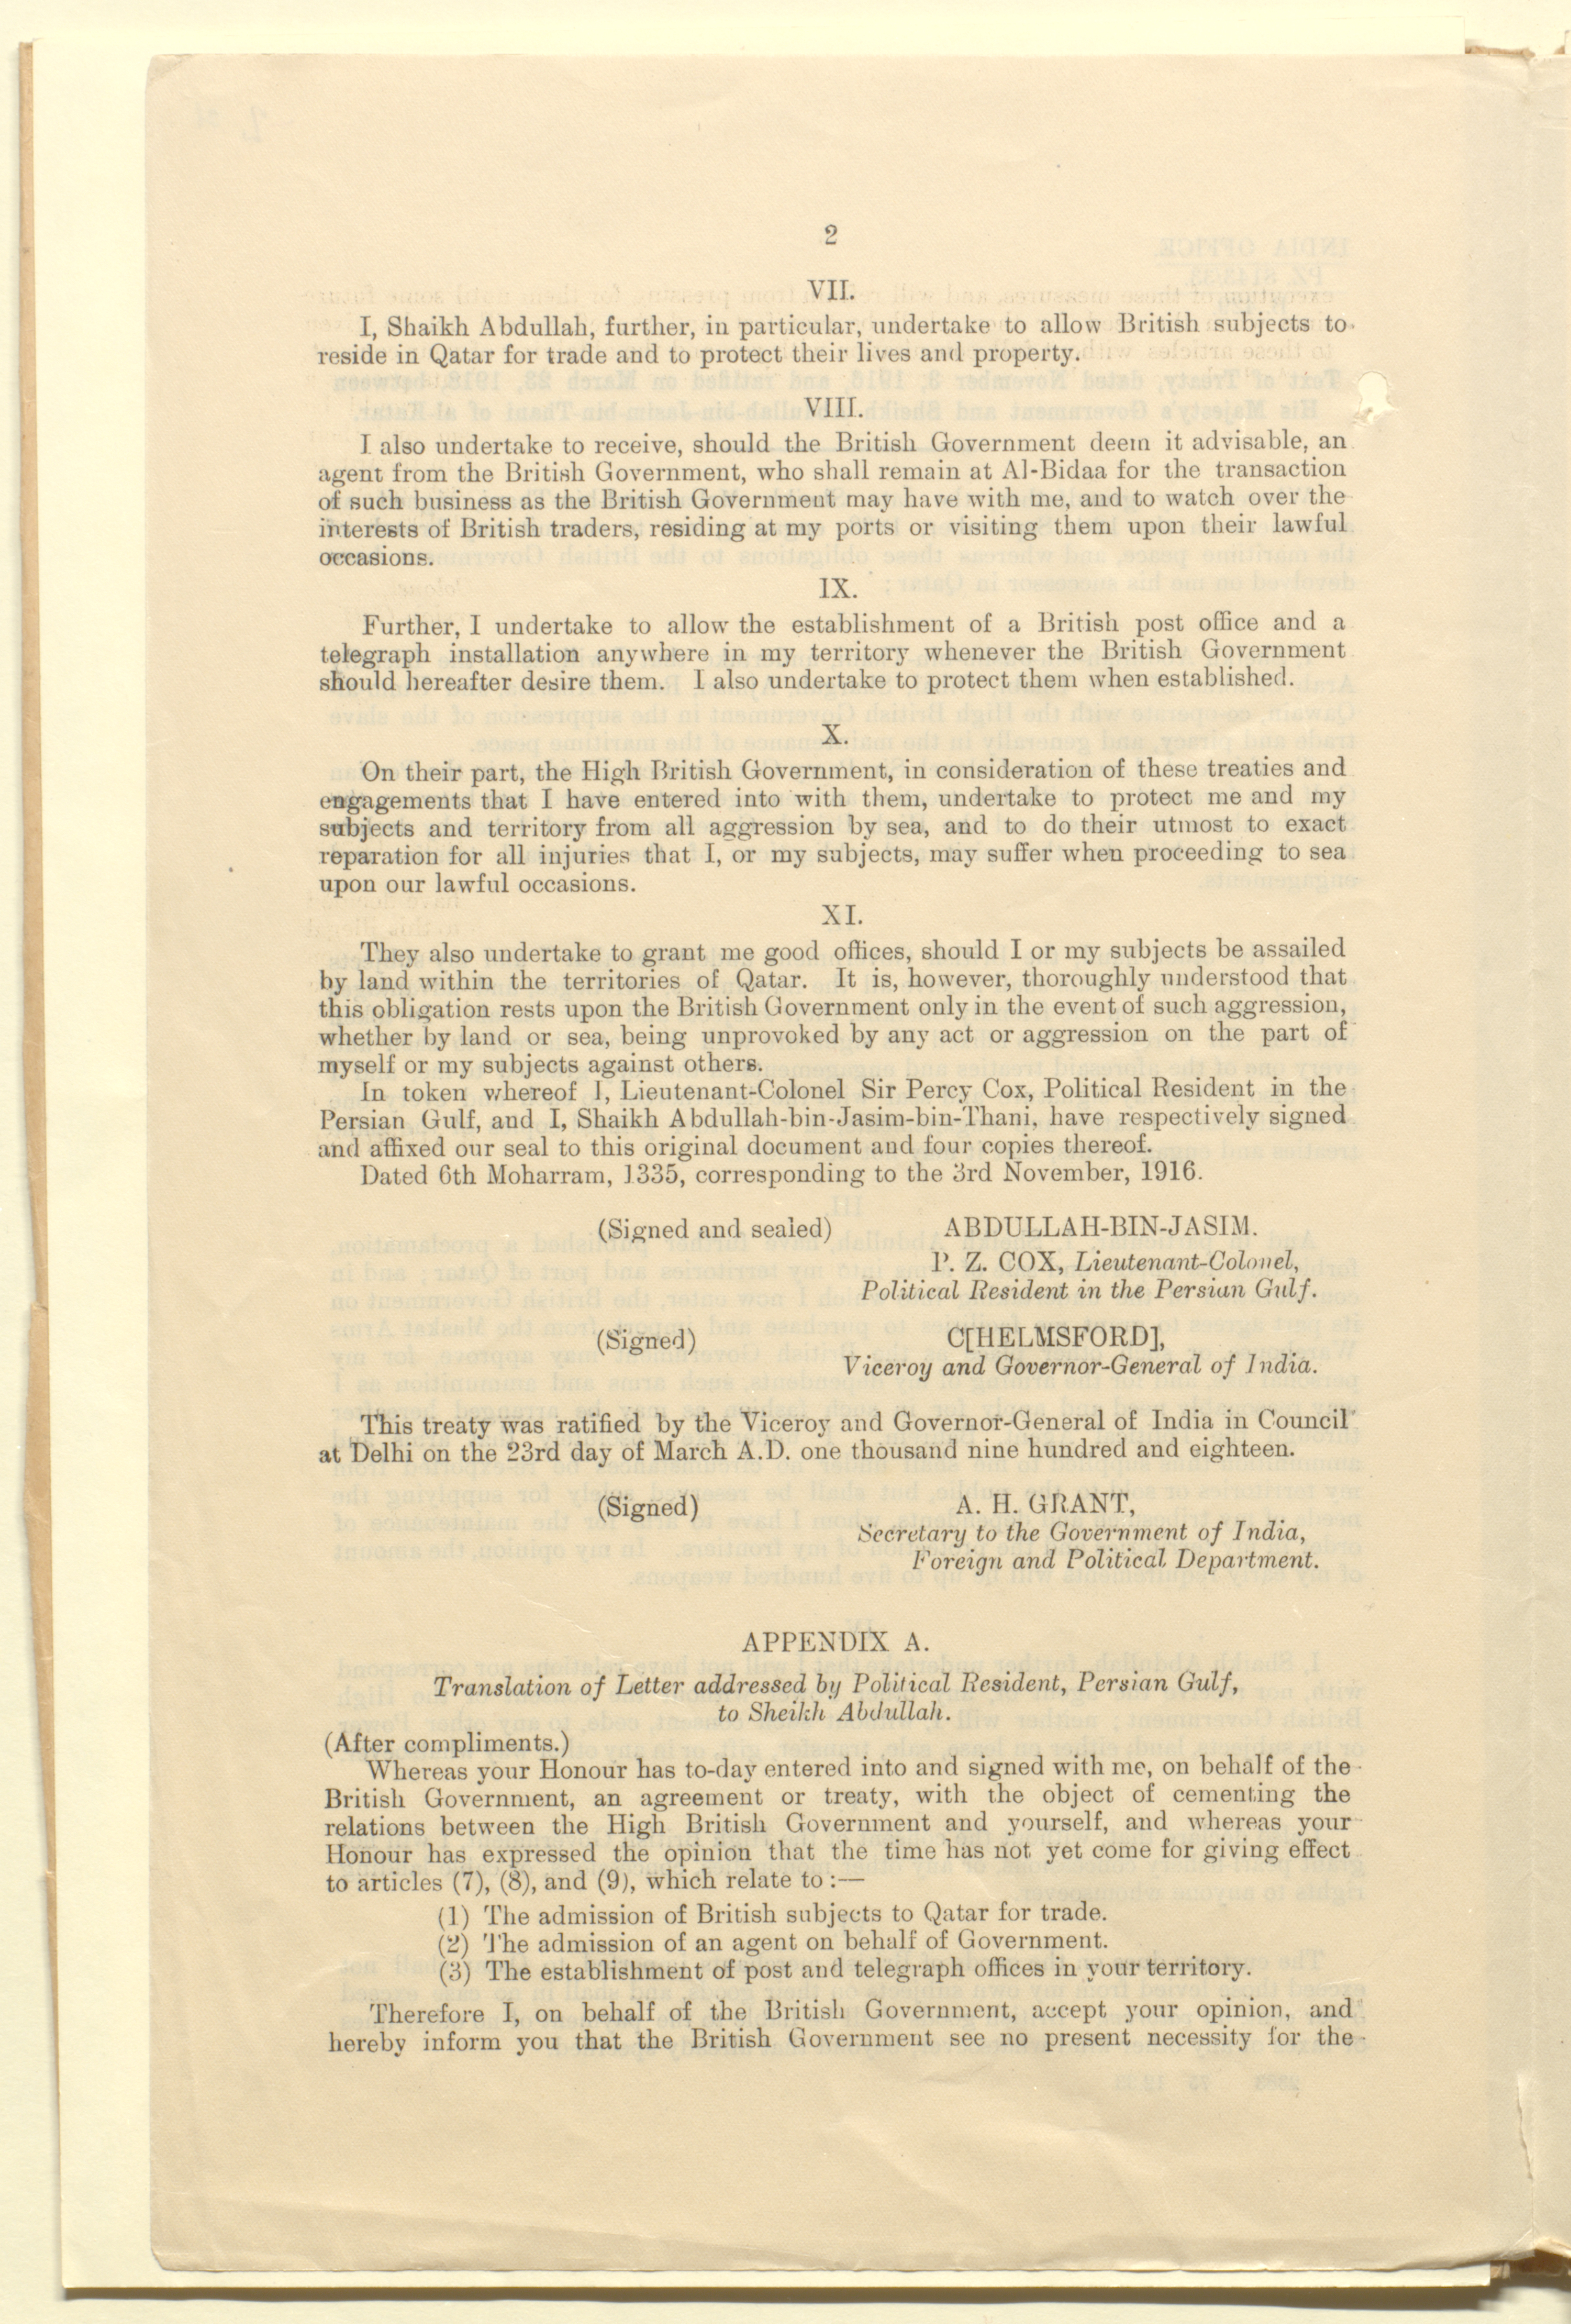 2nd page of text from the 1916 Treaty of Qatar, from the file 'Qatar Affairs' (1941-49) (IOR/L/PS/12/3963)